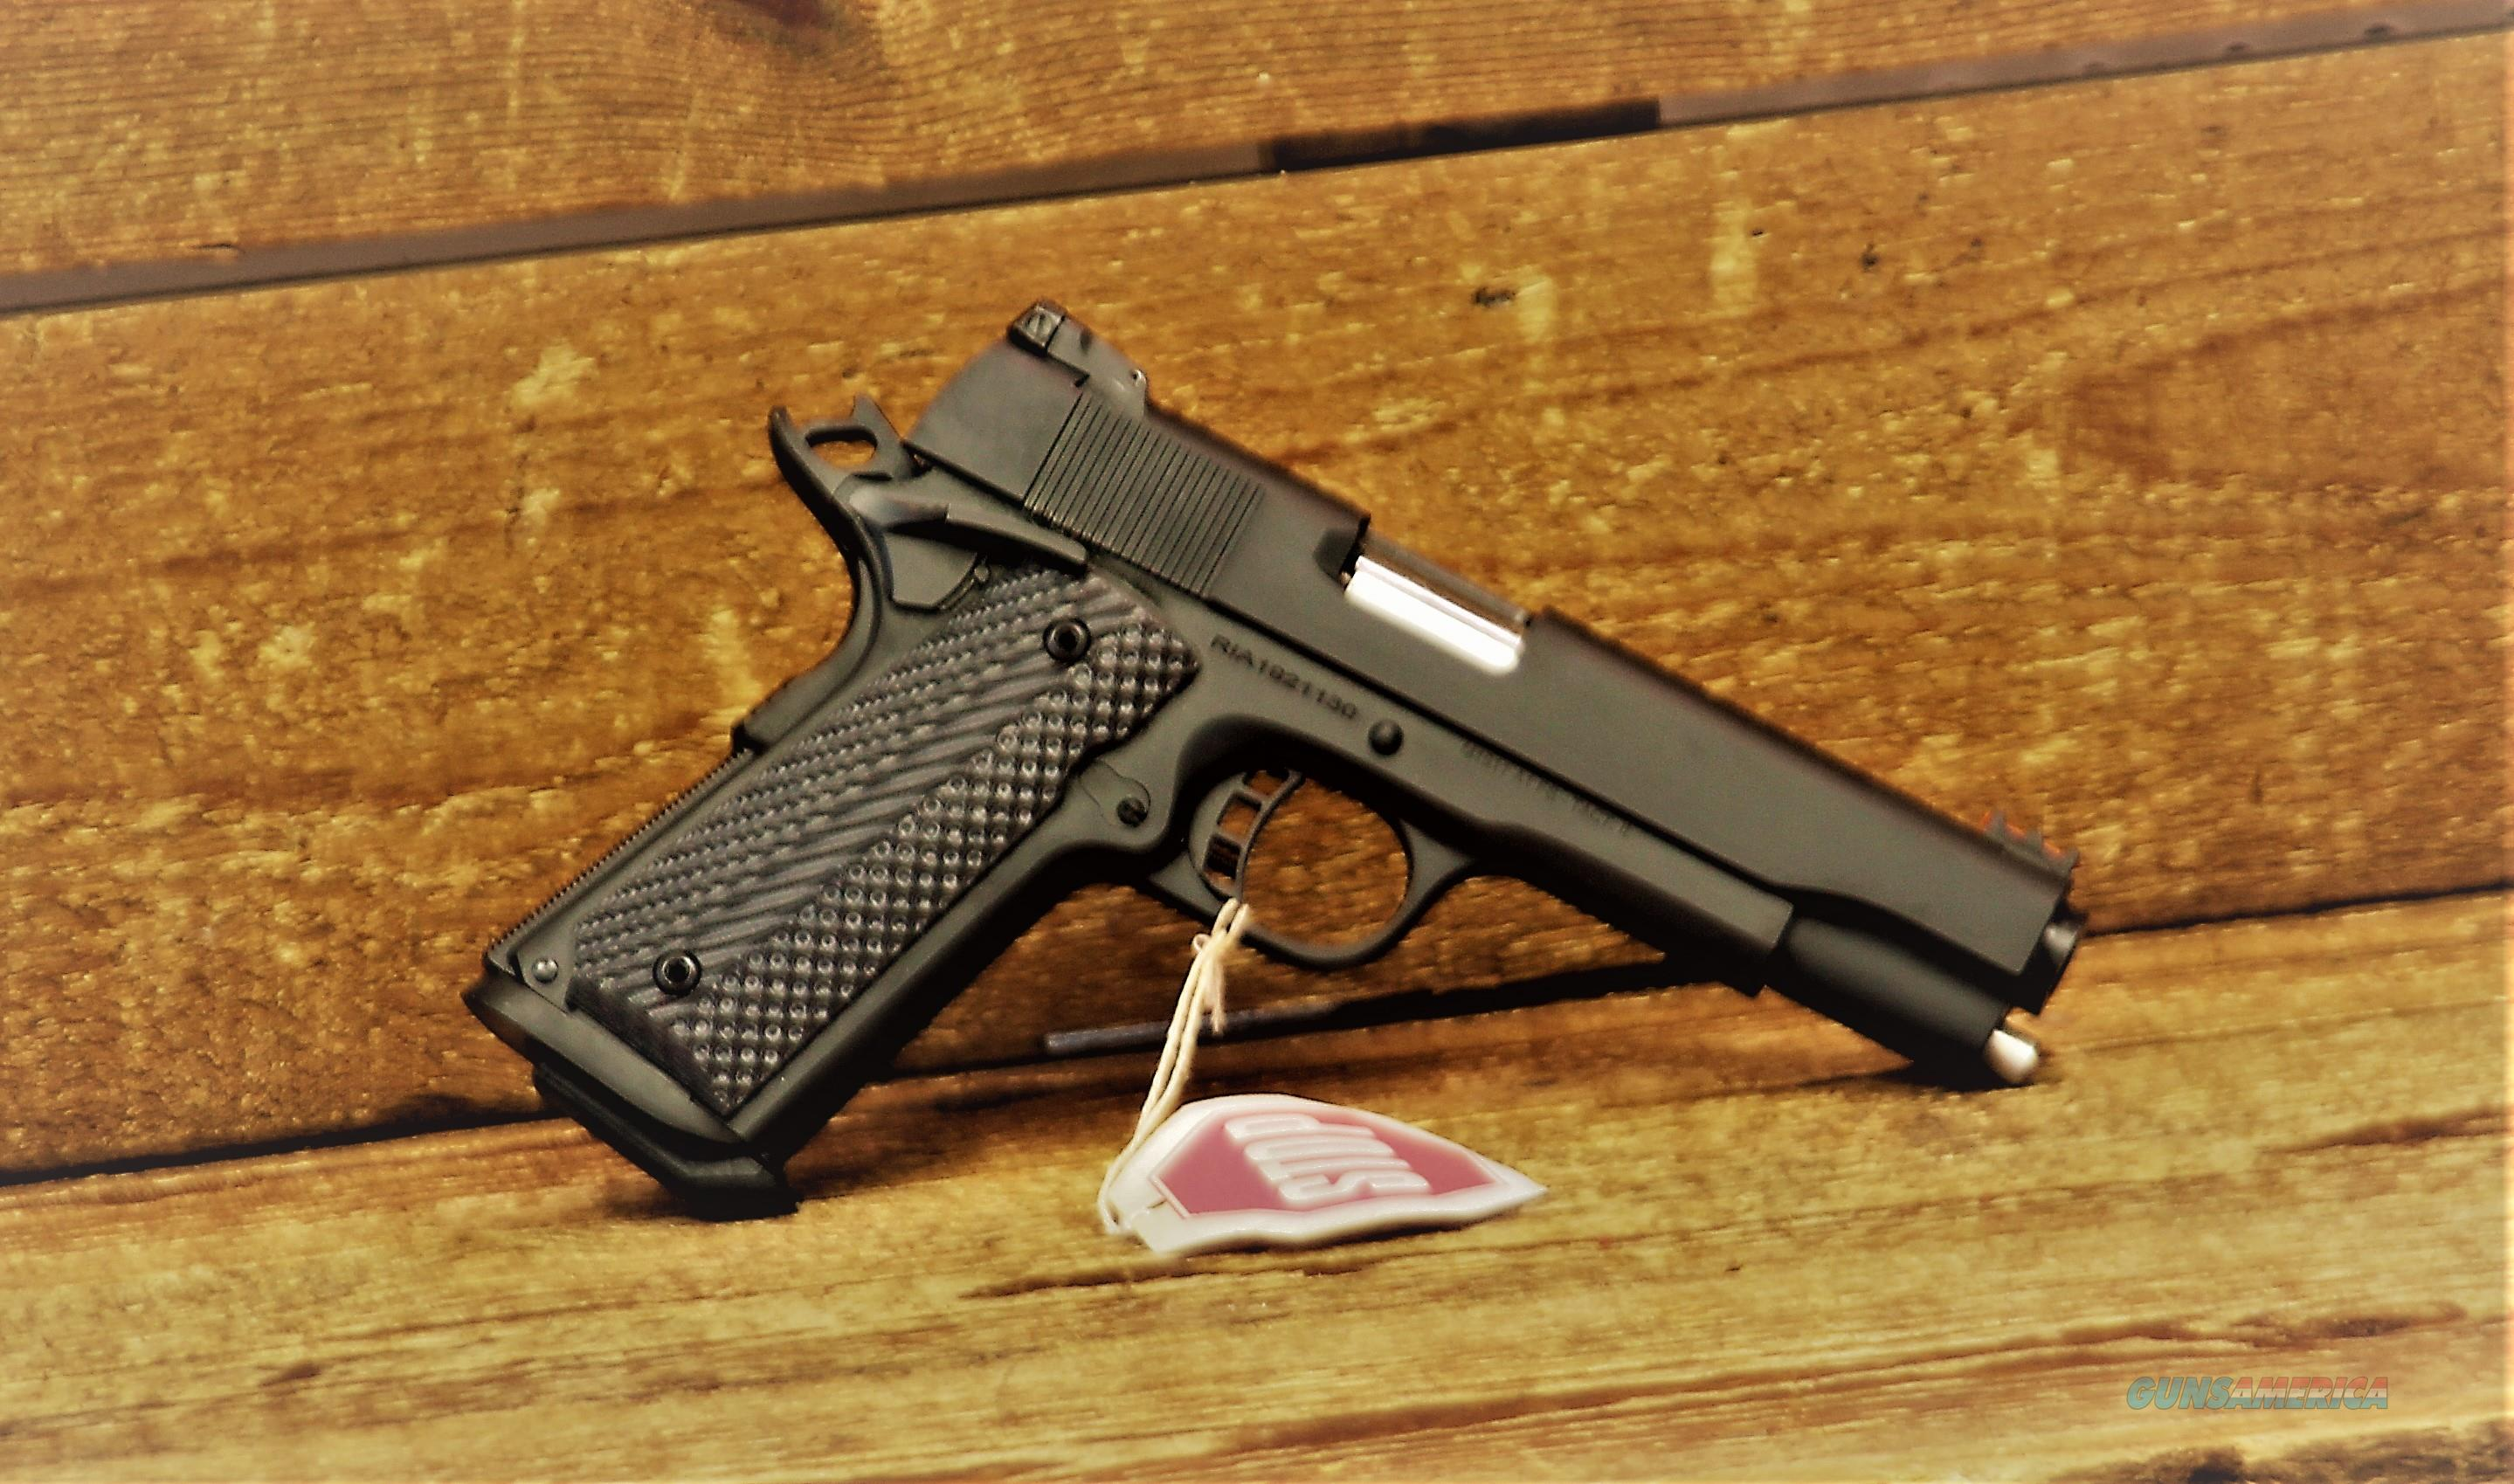 EASY PAY $56 DOWN LAYAWAY 12 MONTHLY PAYMENTS Armscor Rock Island Armory  RIA Parkerized Enhanced sights 1911 10mm RIA standard 1911A1 1911-A1